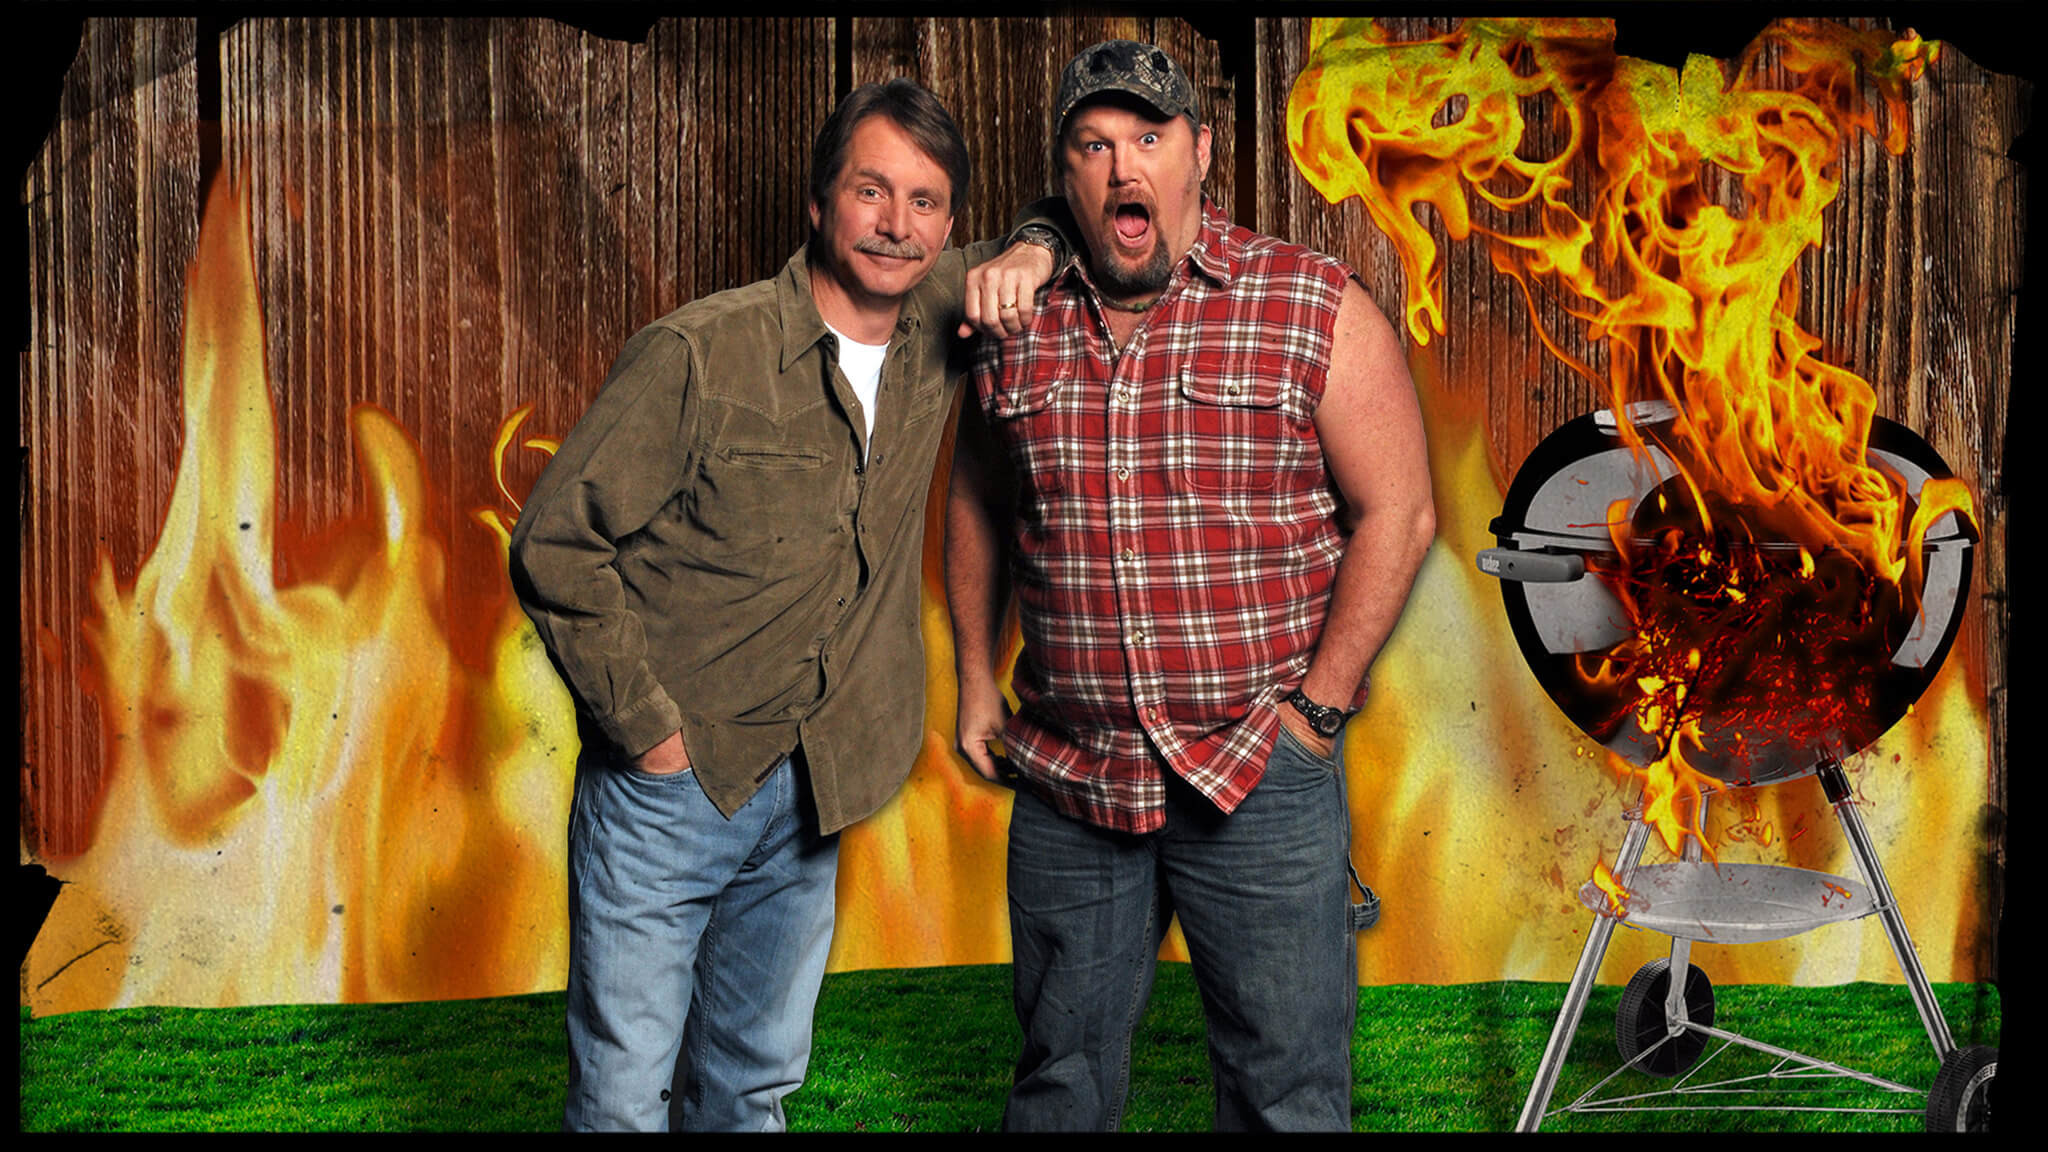 Best ideas about Jeff And Larry'S Backyard Bbq . Save or Pin Jeff & Larry s Backyard BBQ CLTure Now.